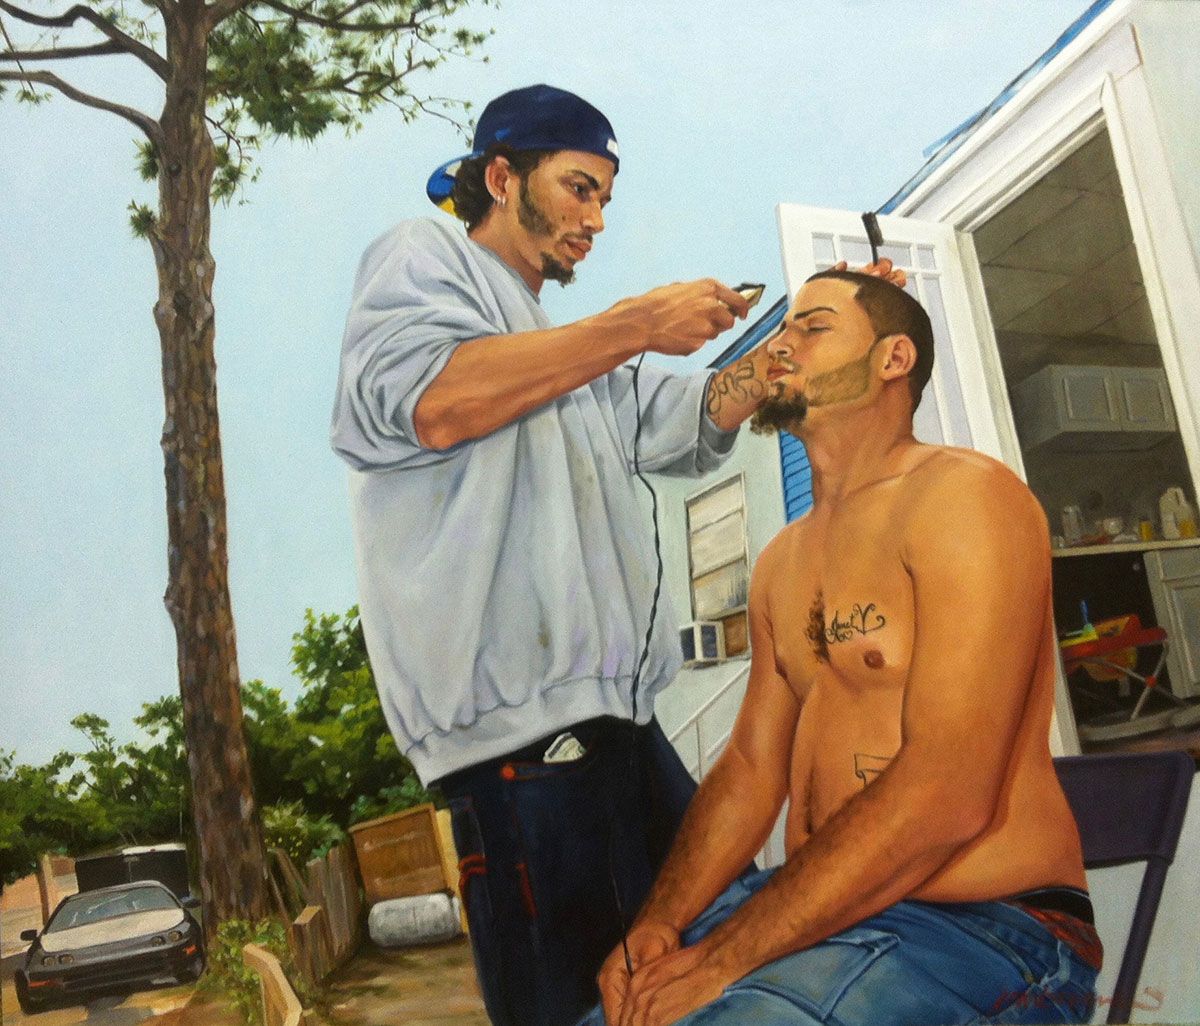 Part of Carbonara's fascination with mobile home parks is how life takes place outside the confines of the trailer, such as this one depicting a haircut.